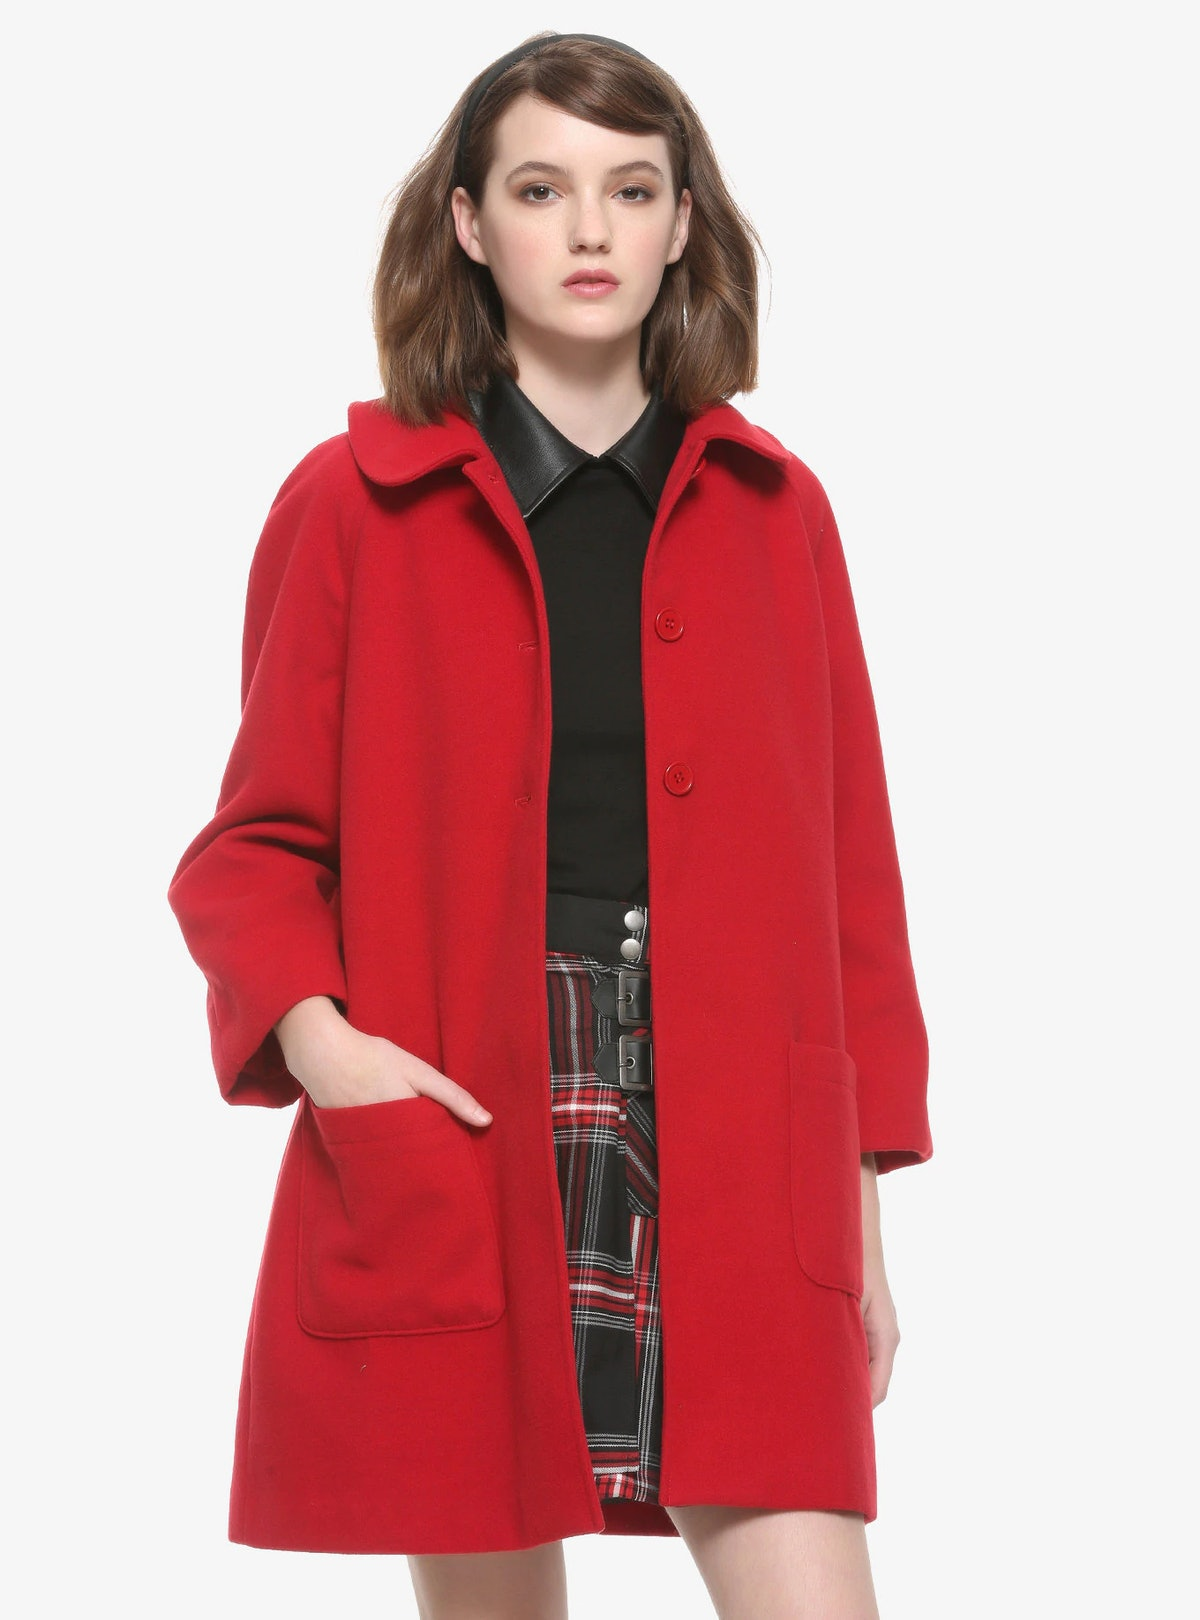 Chilling Adventures Of Sabrina Girls Red Coat